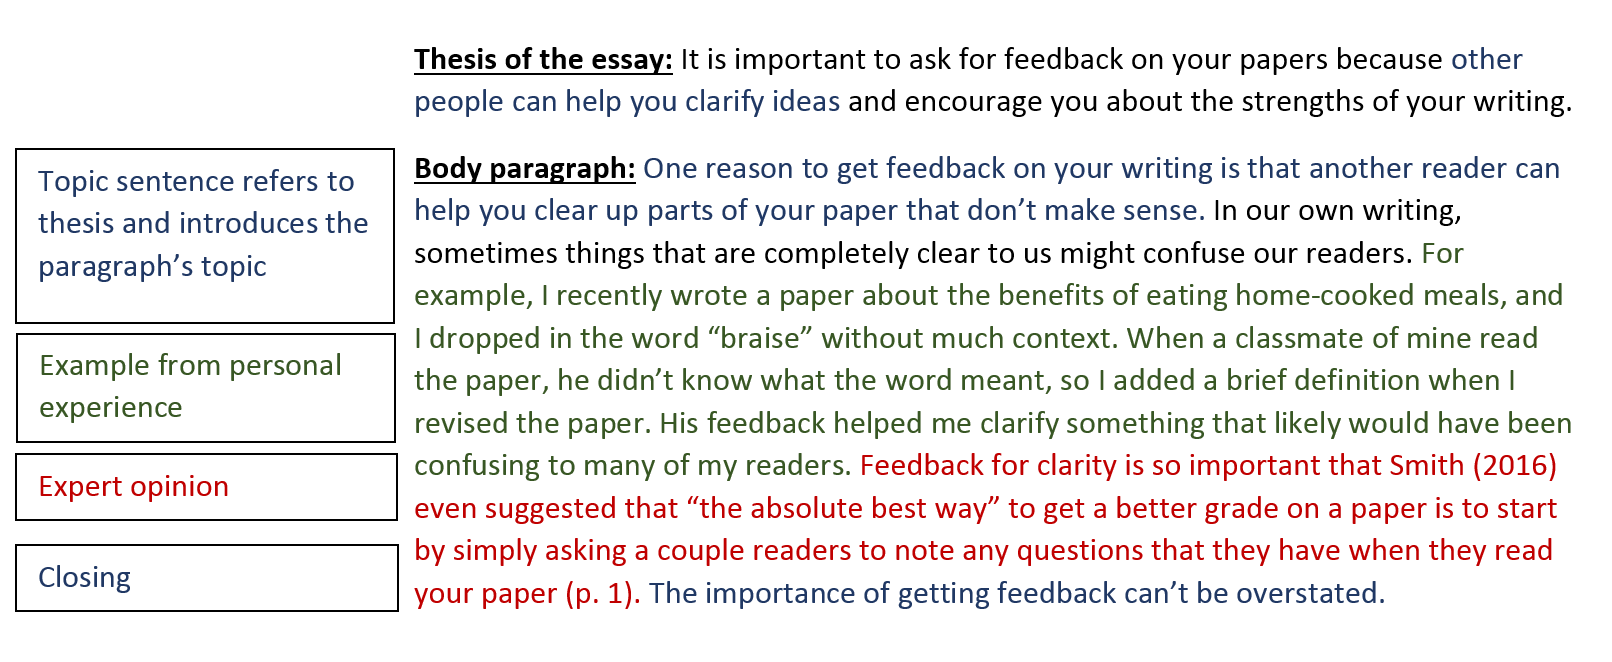 Essay Thesis Statement Writing Your Paper Short Essays In English also Compare And Contrast Essay Examples For High School Body Paragraphs  Writing Your Paper  Research Guides At Eastern  Good Science Essay Topics